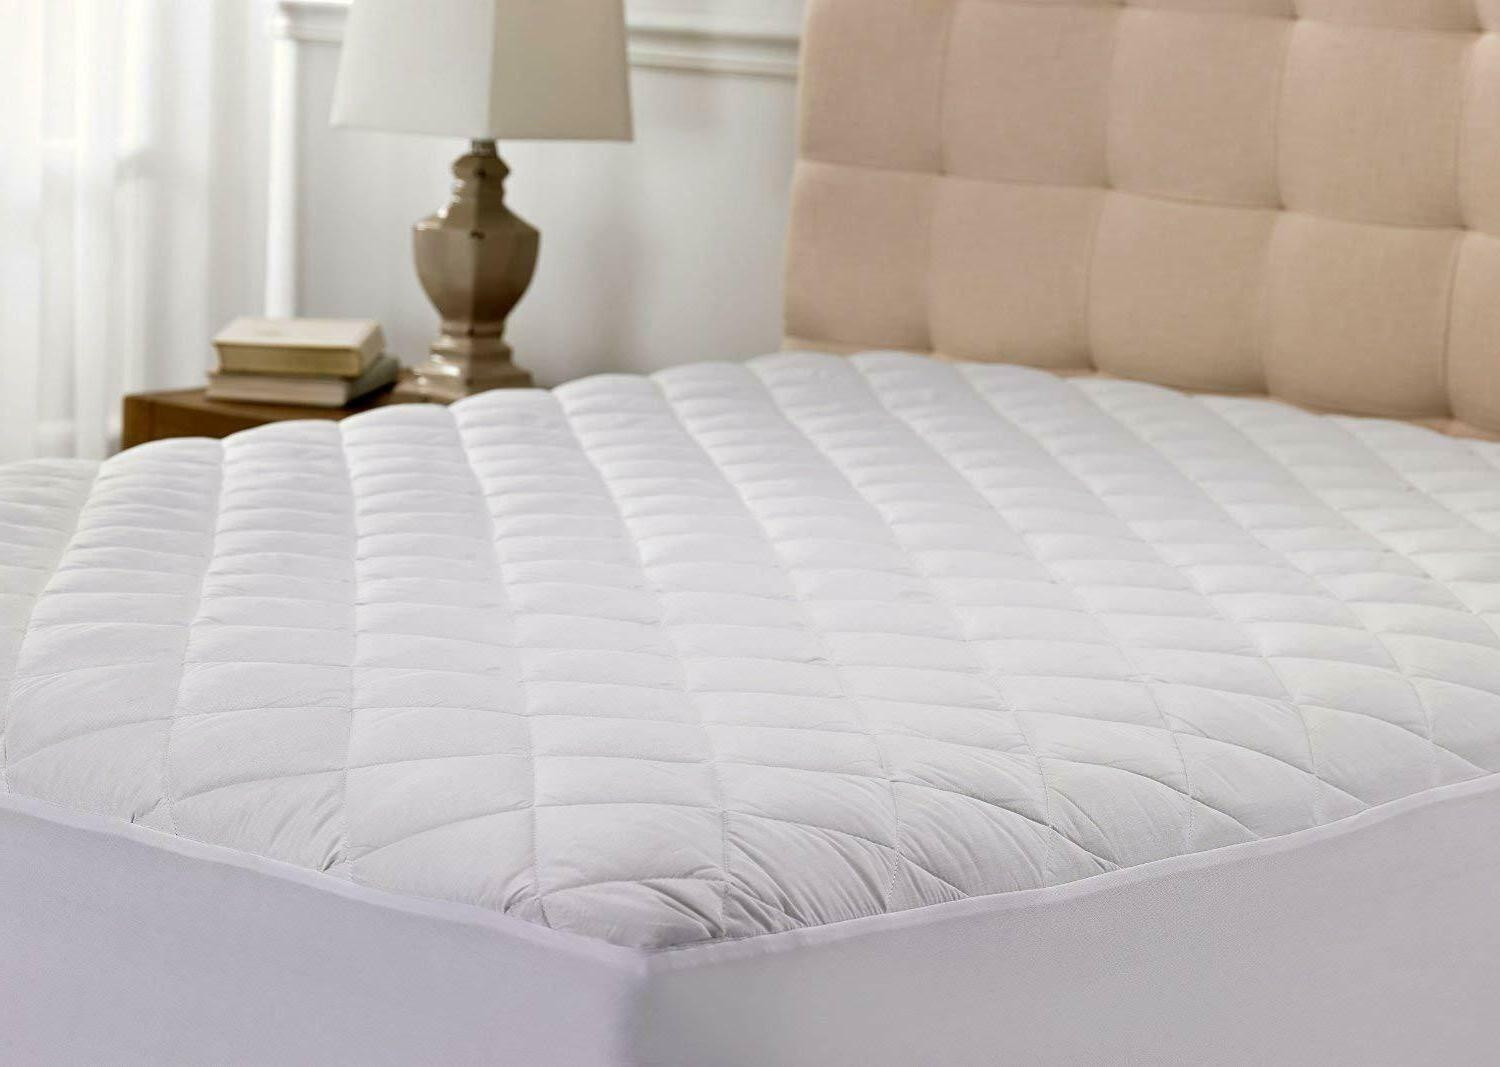 quilted mattress cover protector queen size bedding